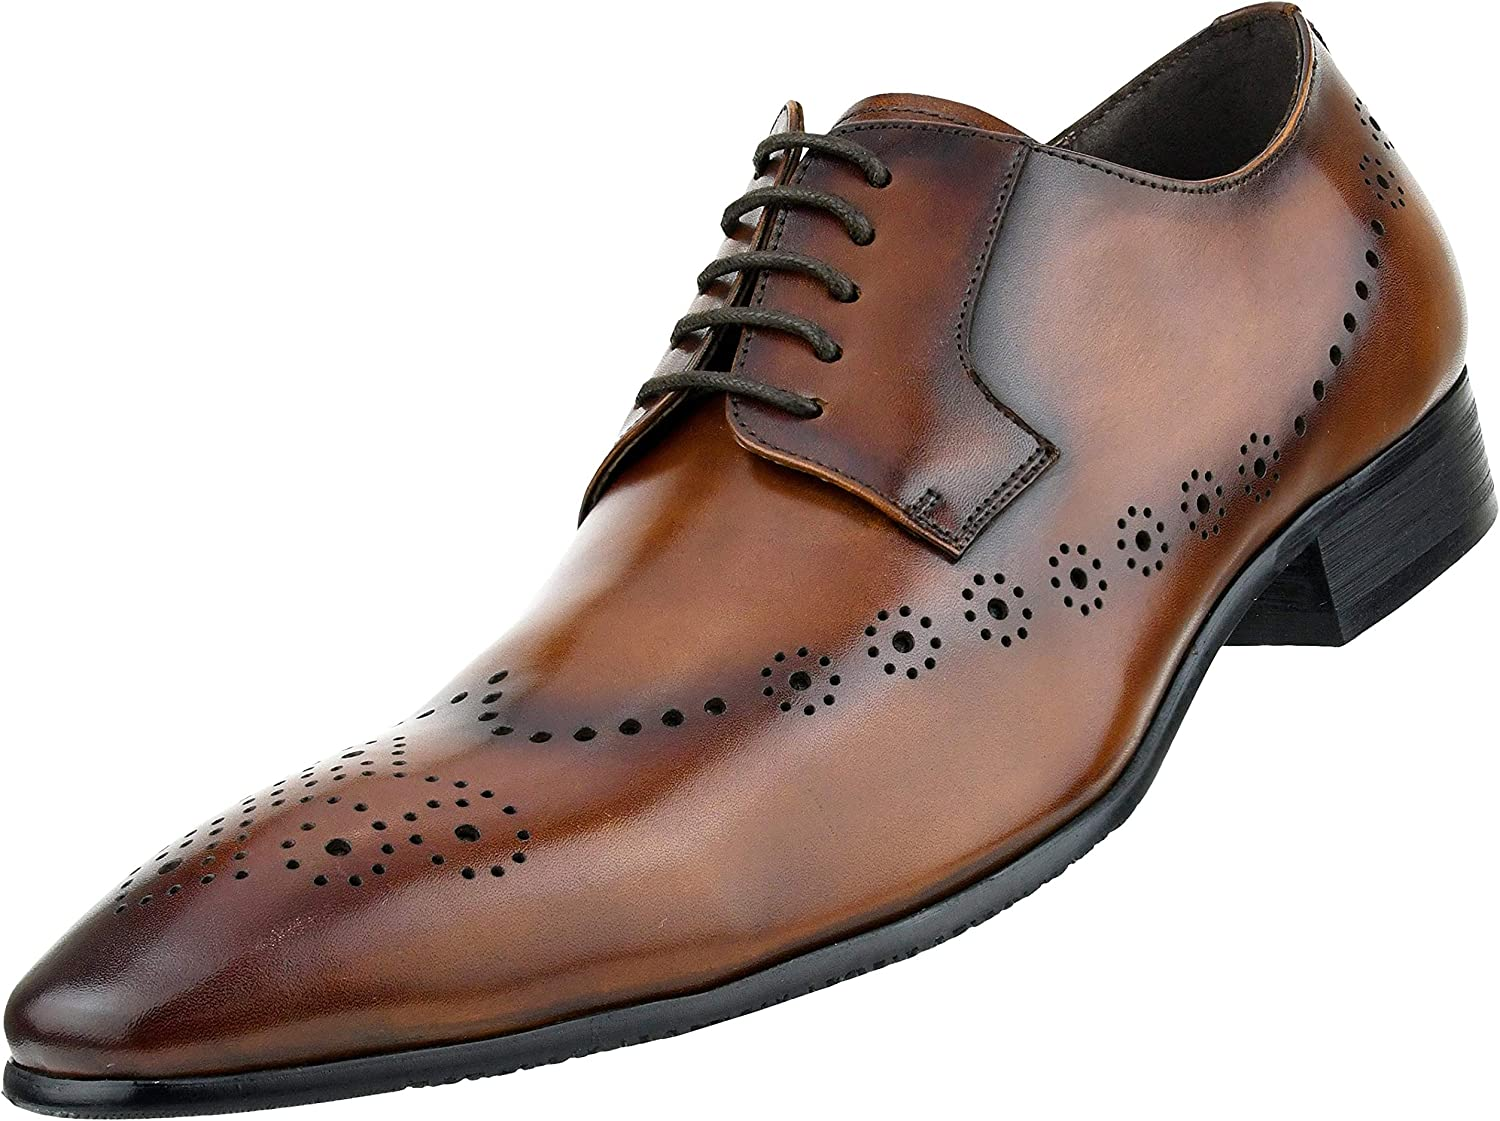 Style AG820 Asher Green Mens Genuine Leather Oxford with Decorative Perfortated Toe and Wing Tip Design Dress Shoe